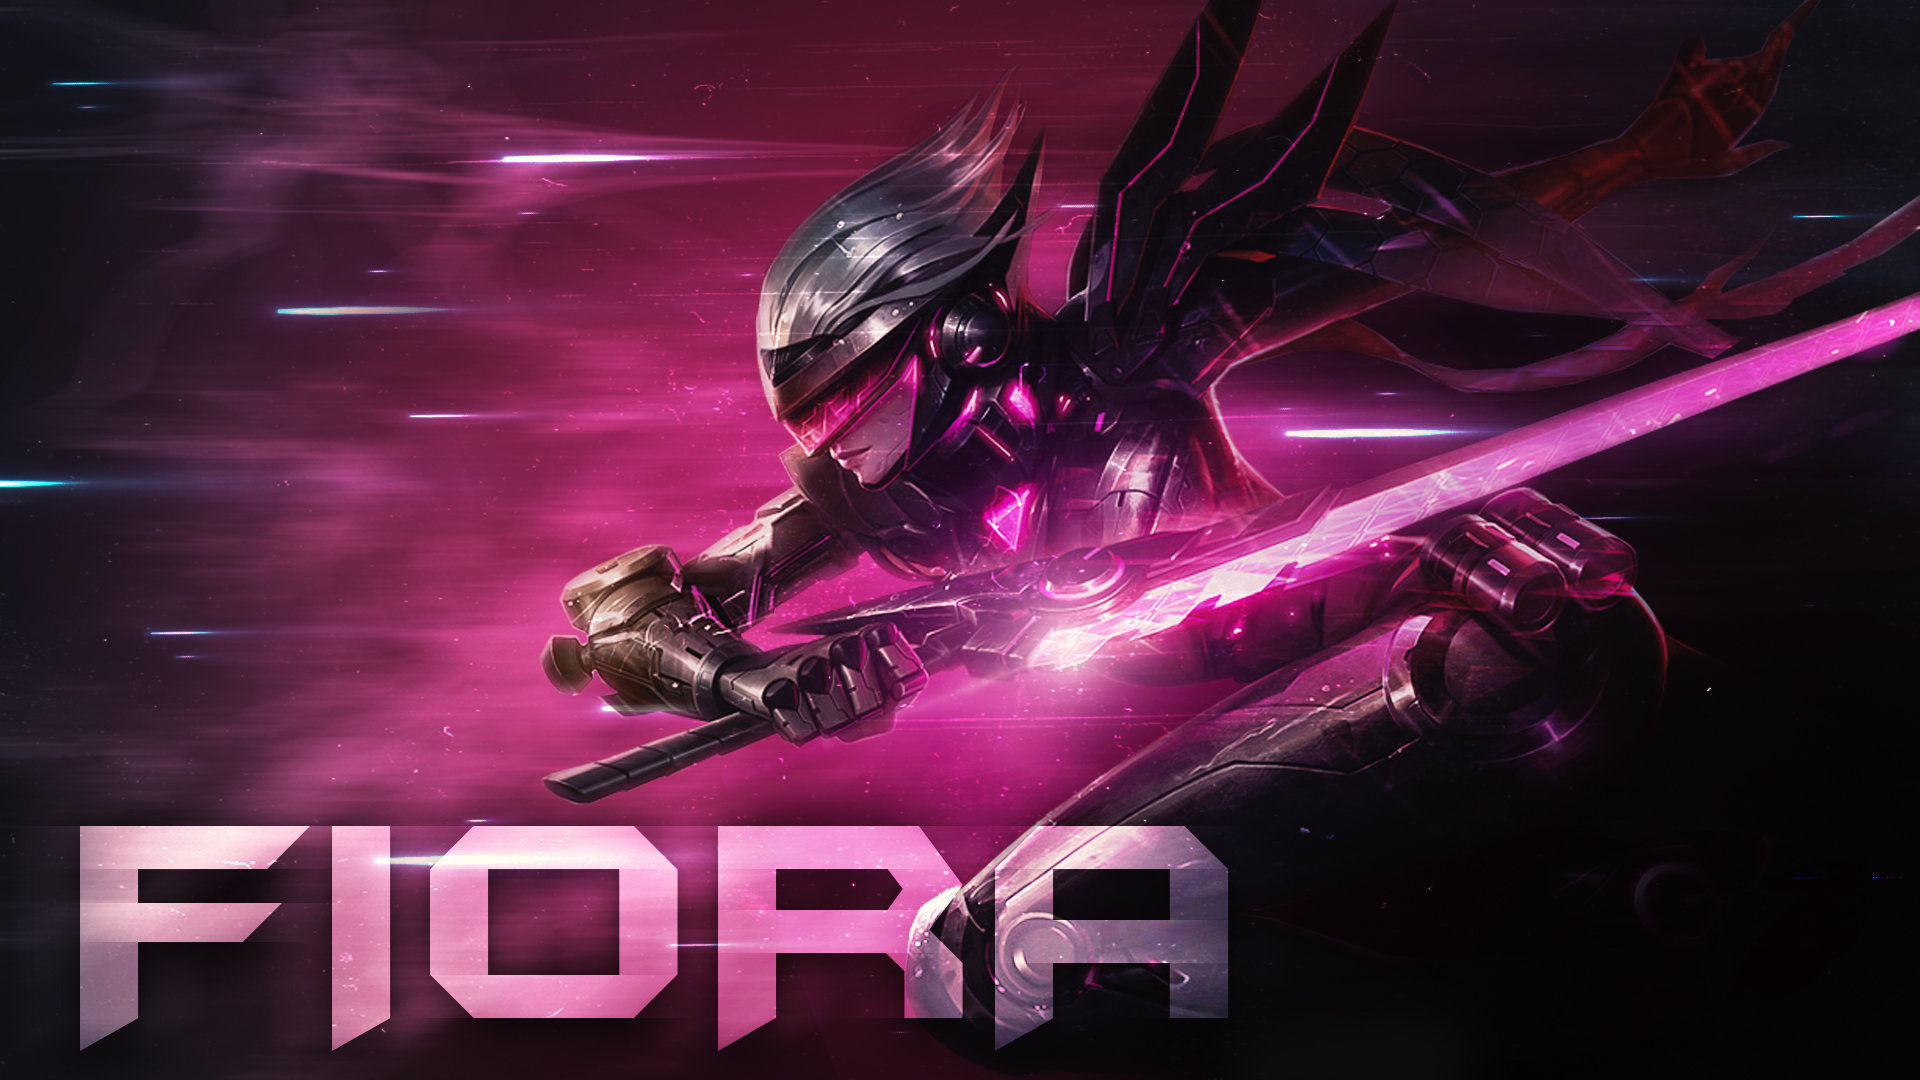 Fiora League Of Legends Wallpapers 1920x1080 Full Hd 1080p